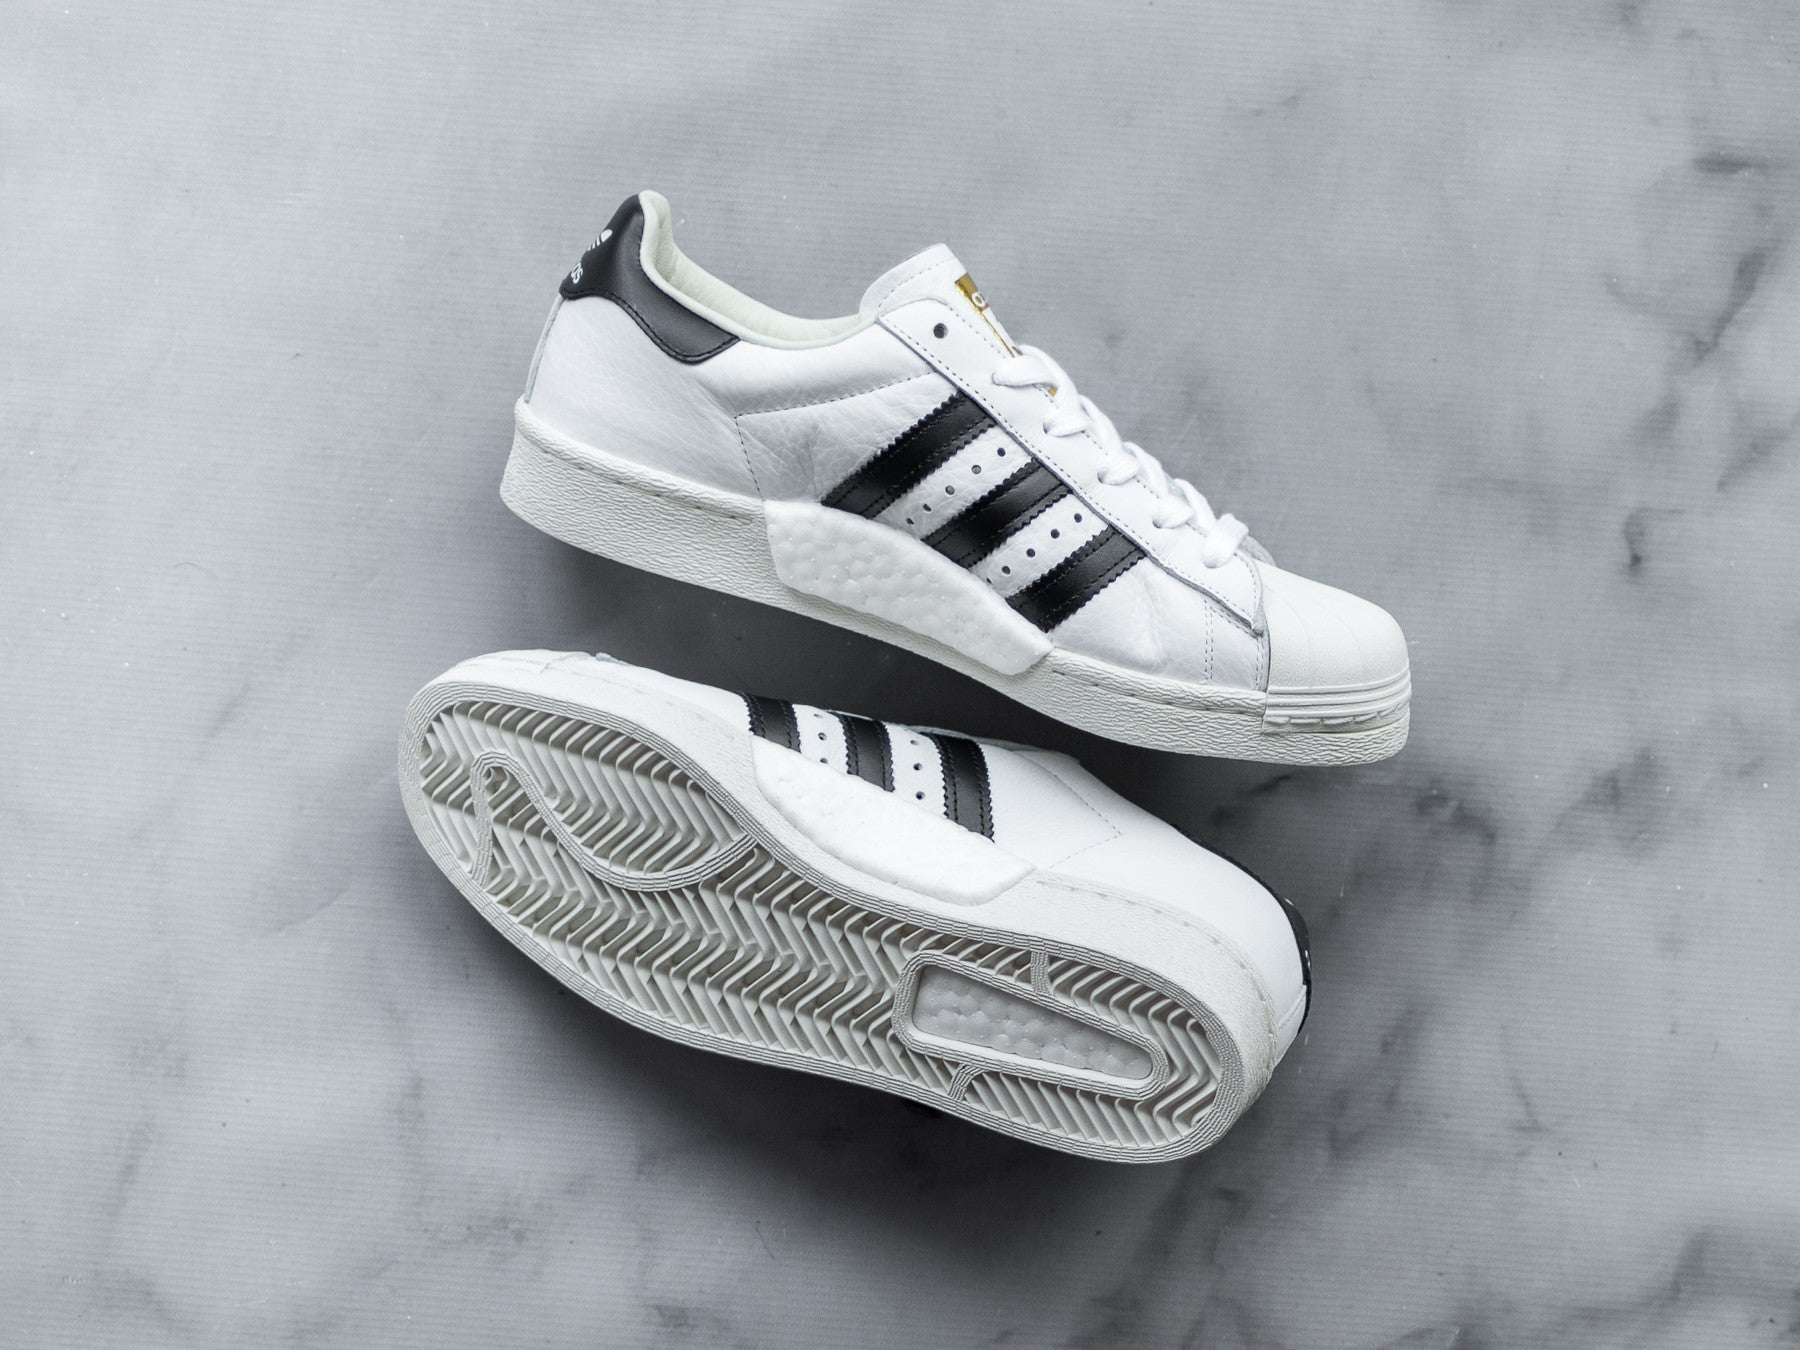 Originals Introducing Boost The Superstar Adidas SqSpEcwX